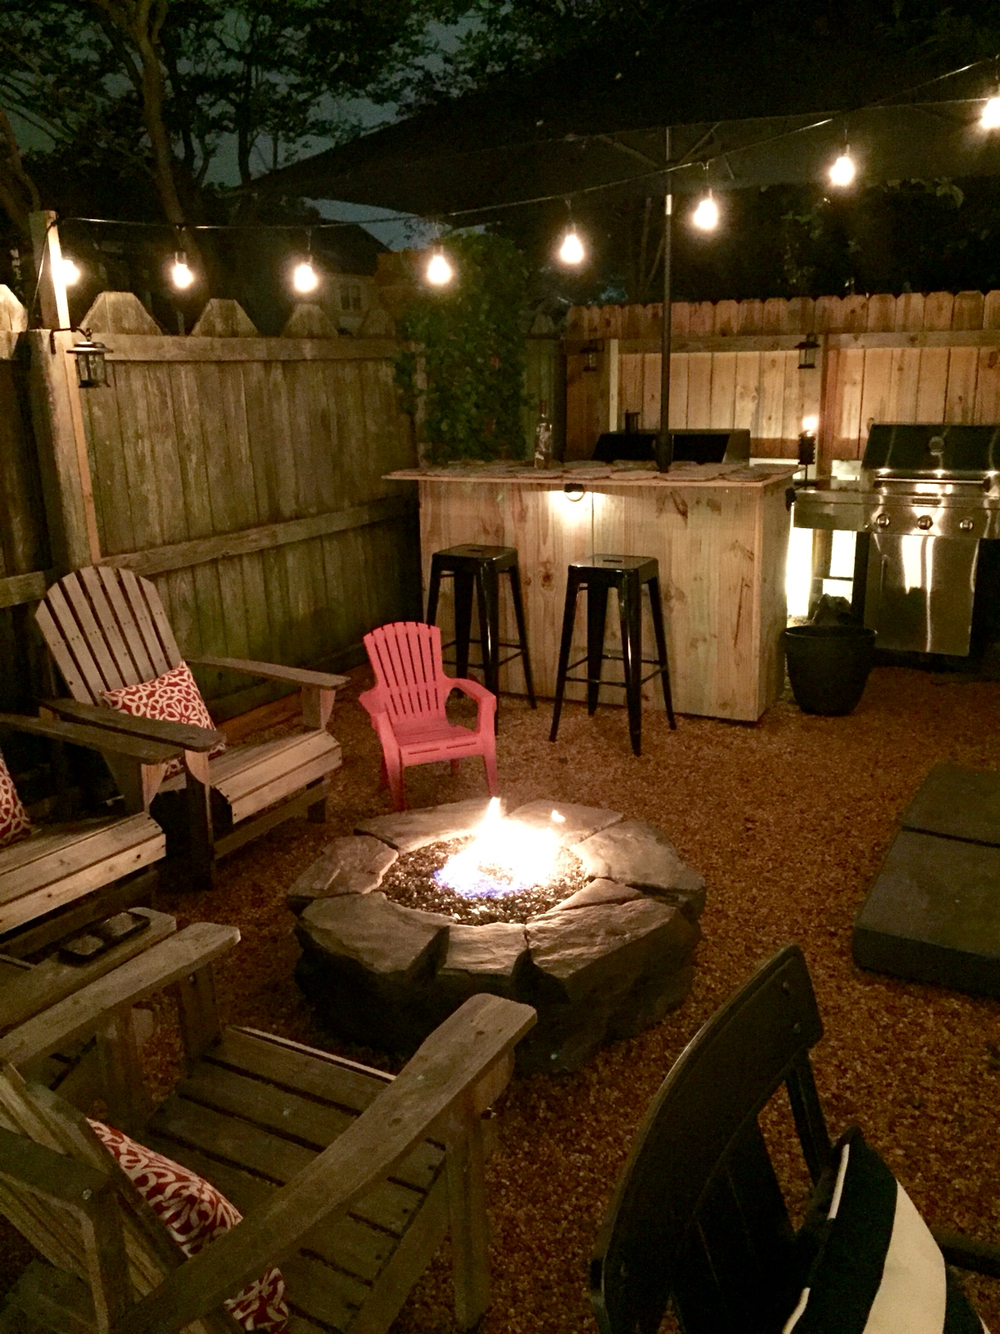 18 Fire Pit Ideas For Your Backyard - Best of DIY Ideas on Diy Back Patio Ideas id=86692